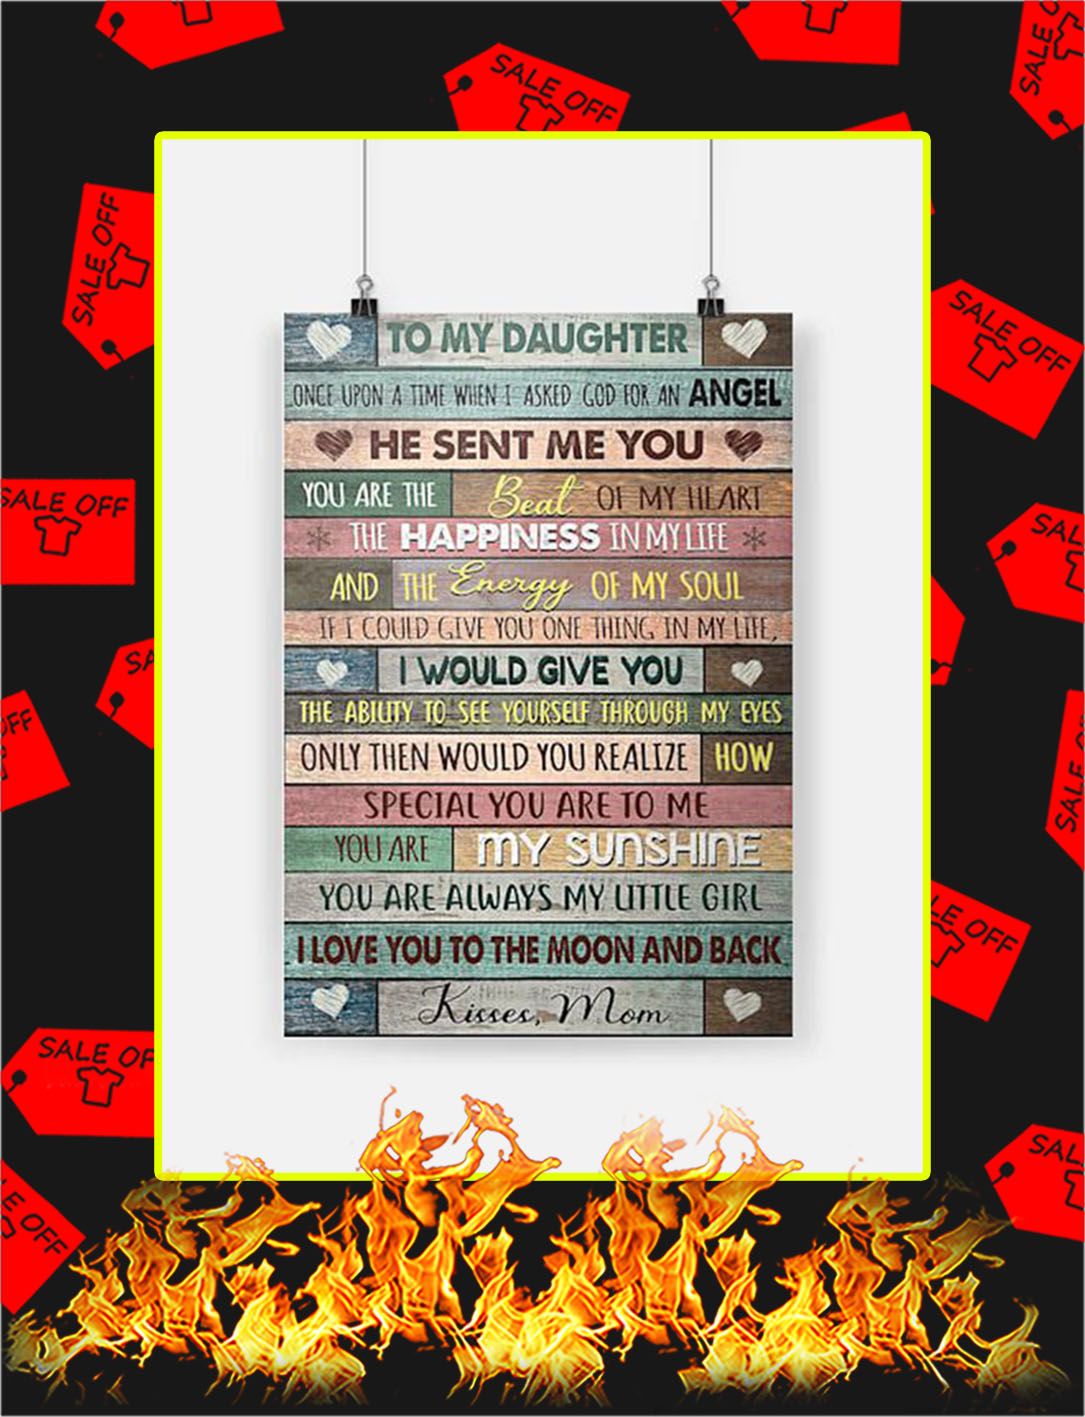 To My Daughter Kisses Mom Poster - A2